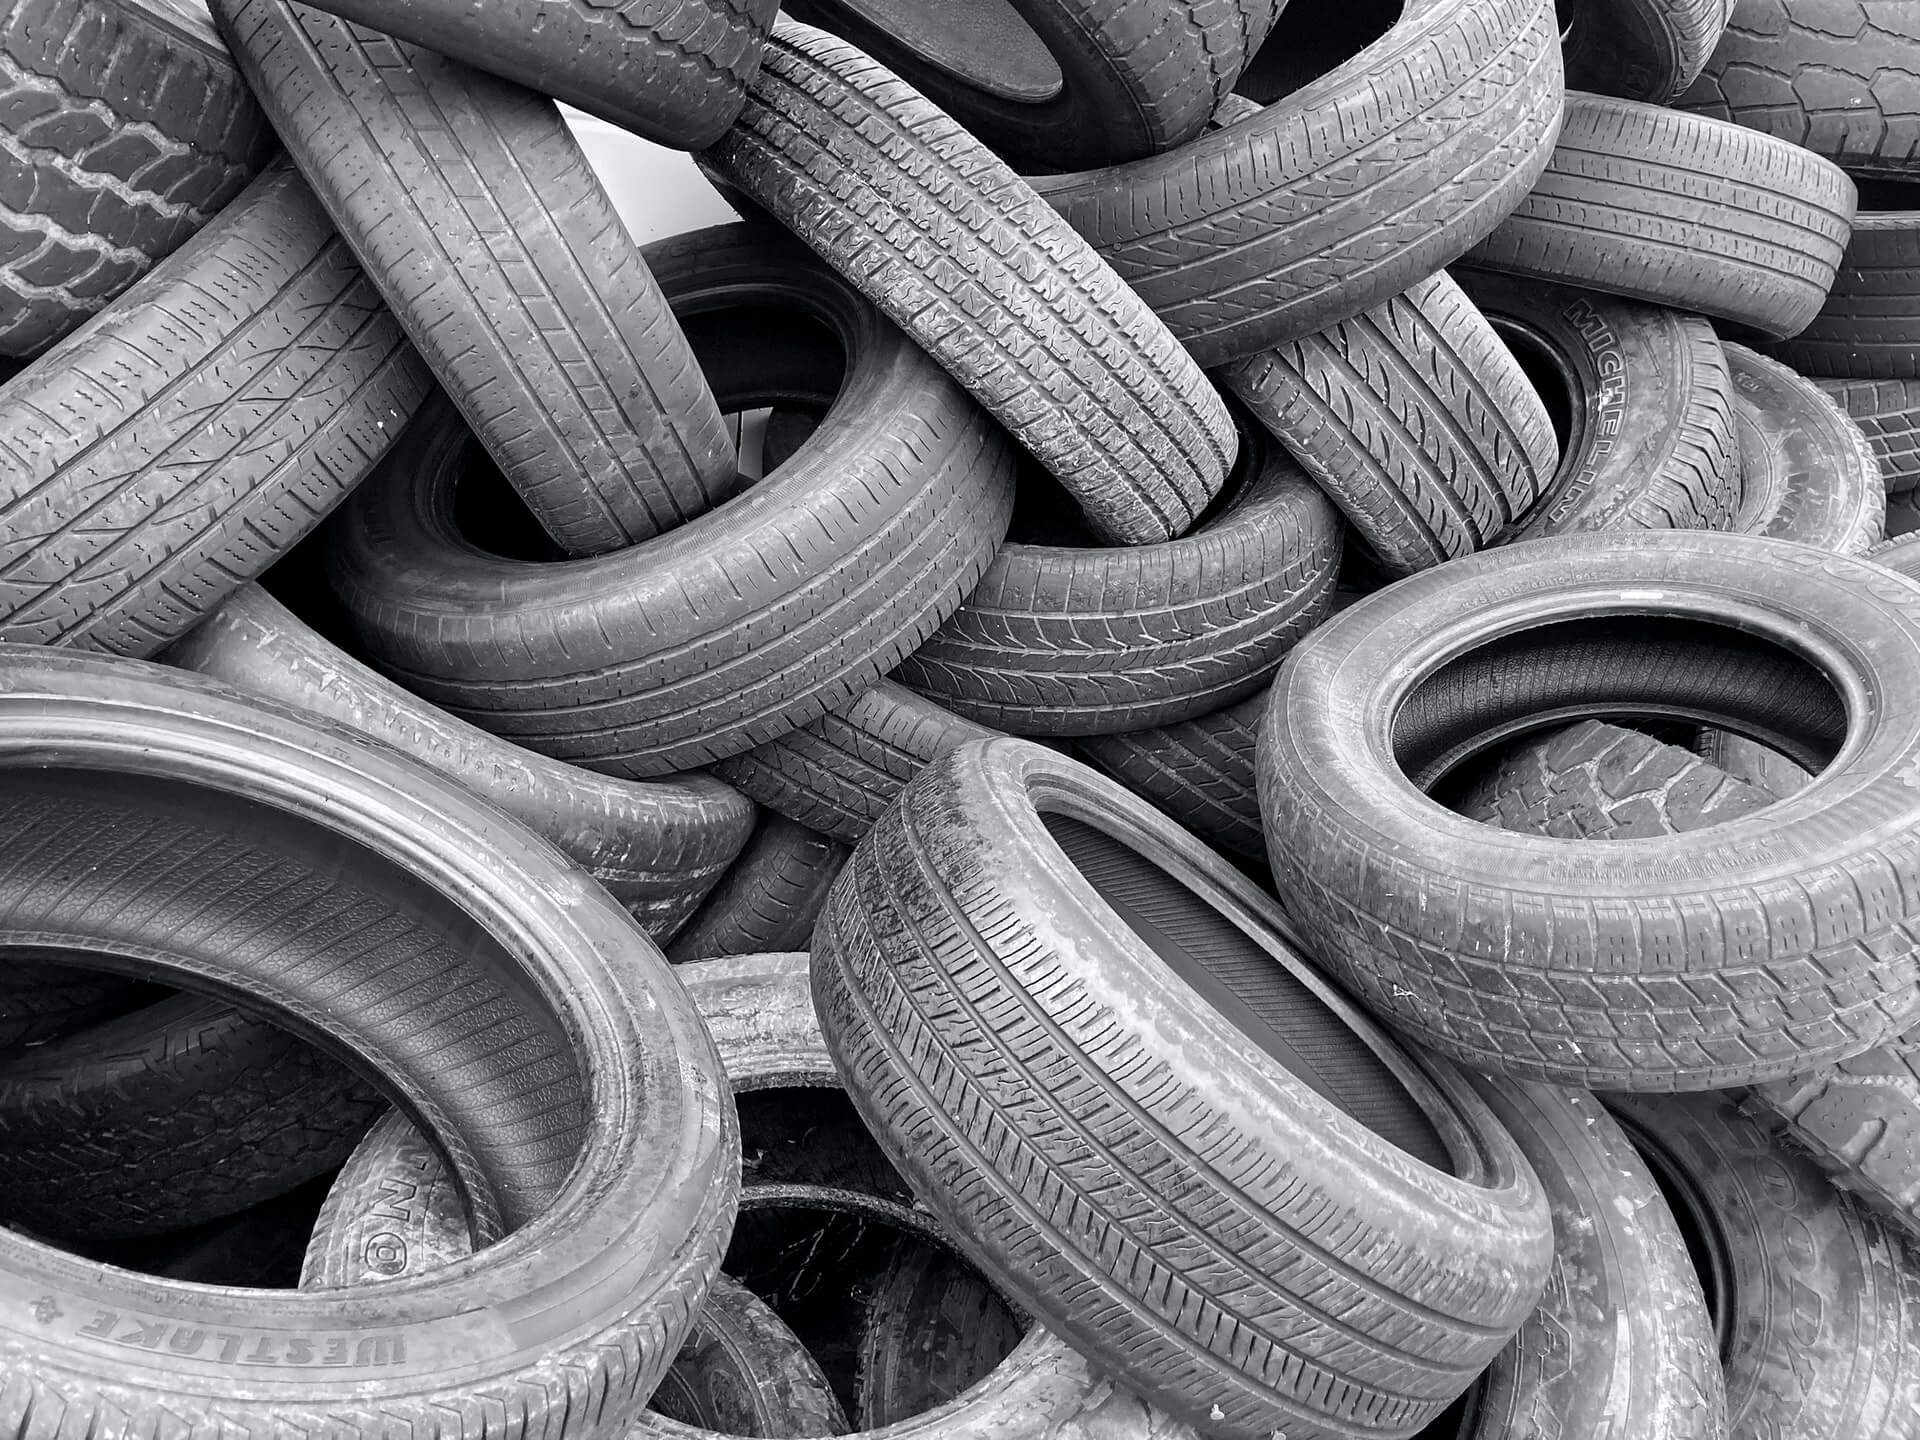 Tires in an unorganized pile